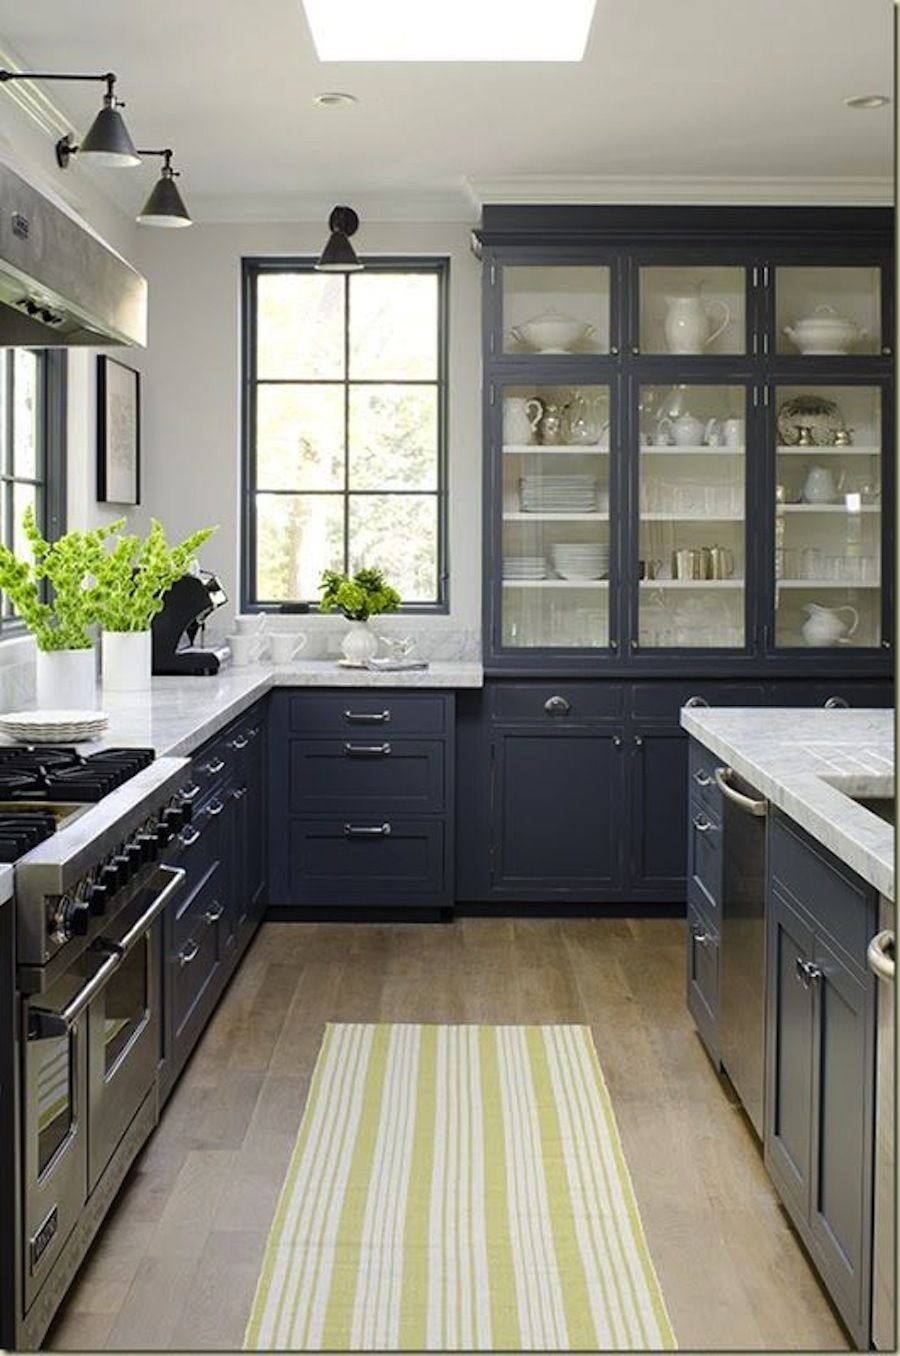 15 Stunning Gray Kitchens Kitchen Design Country Kitchen Kitchen Inspirations